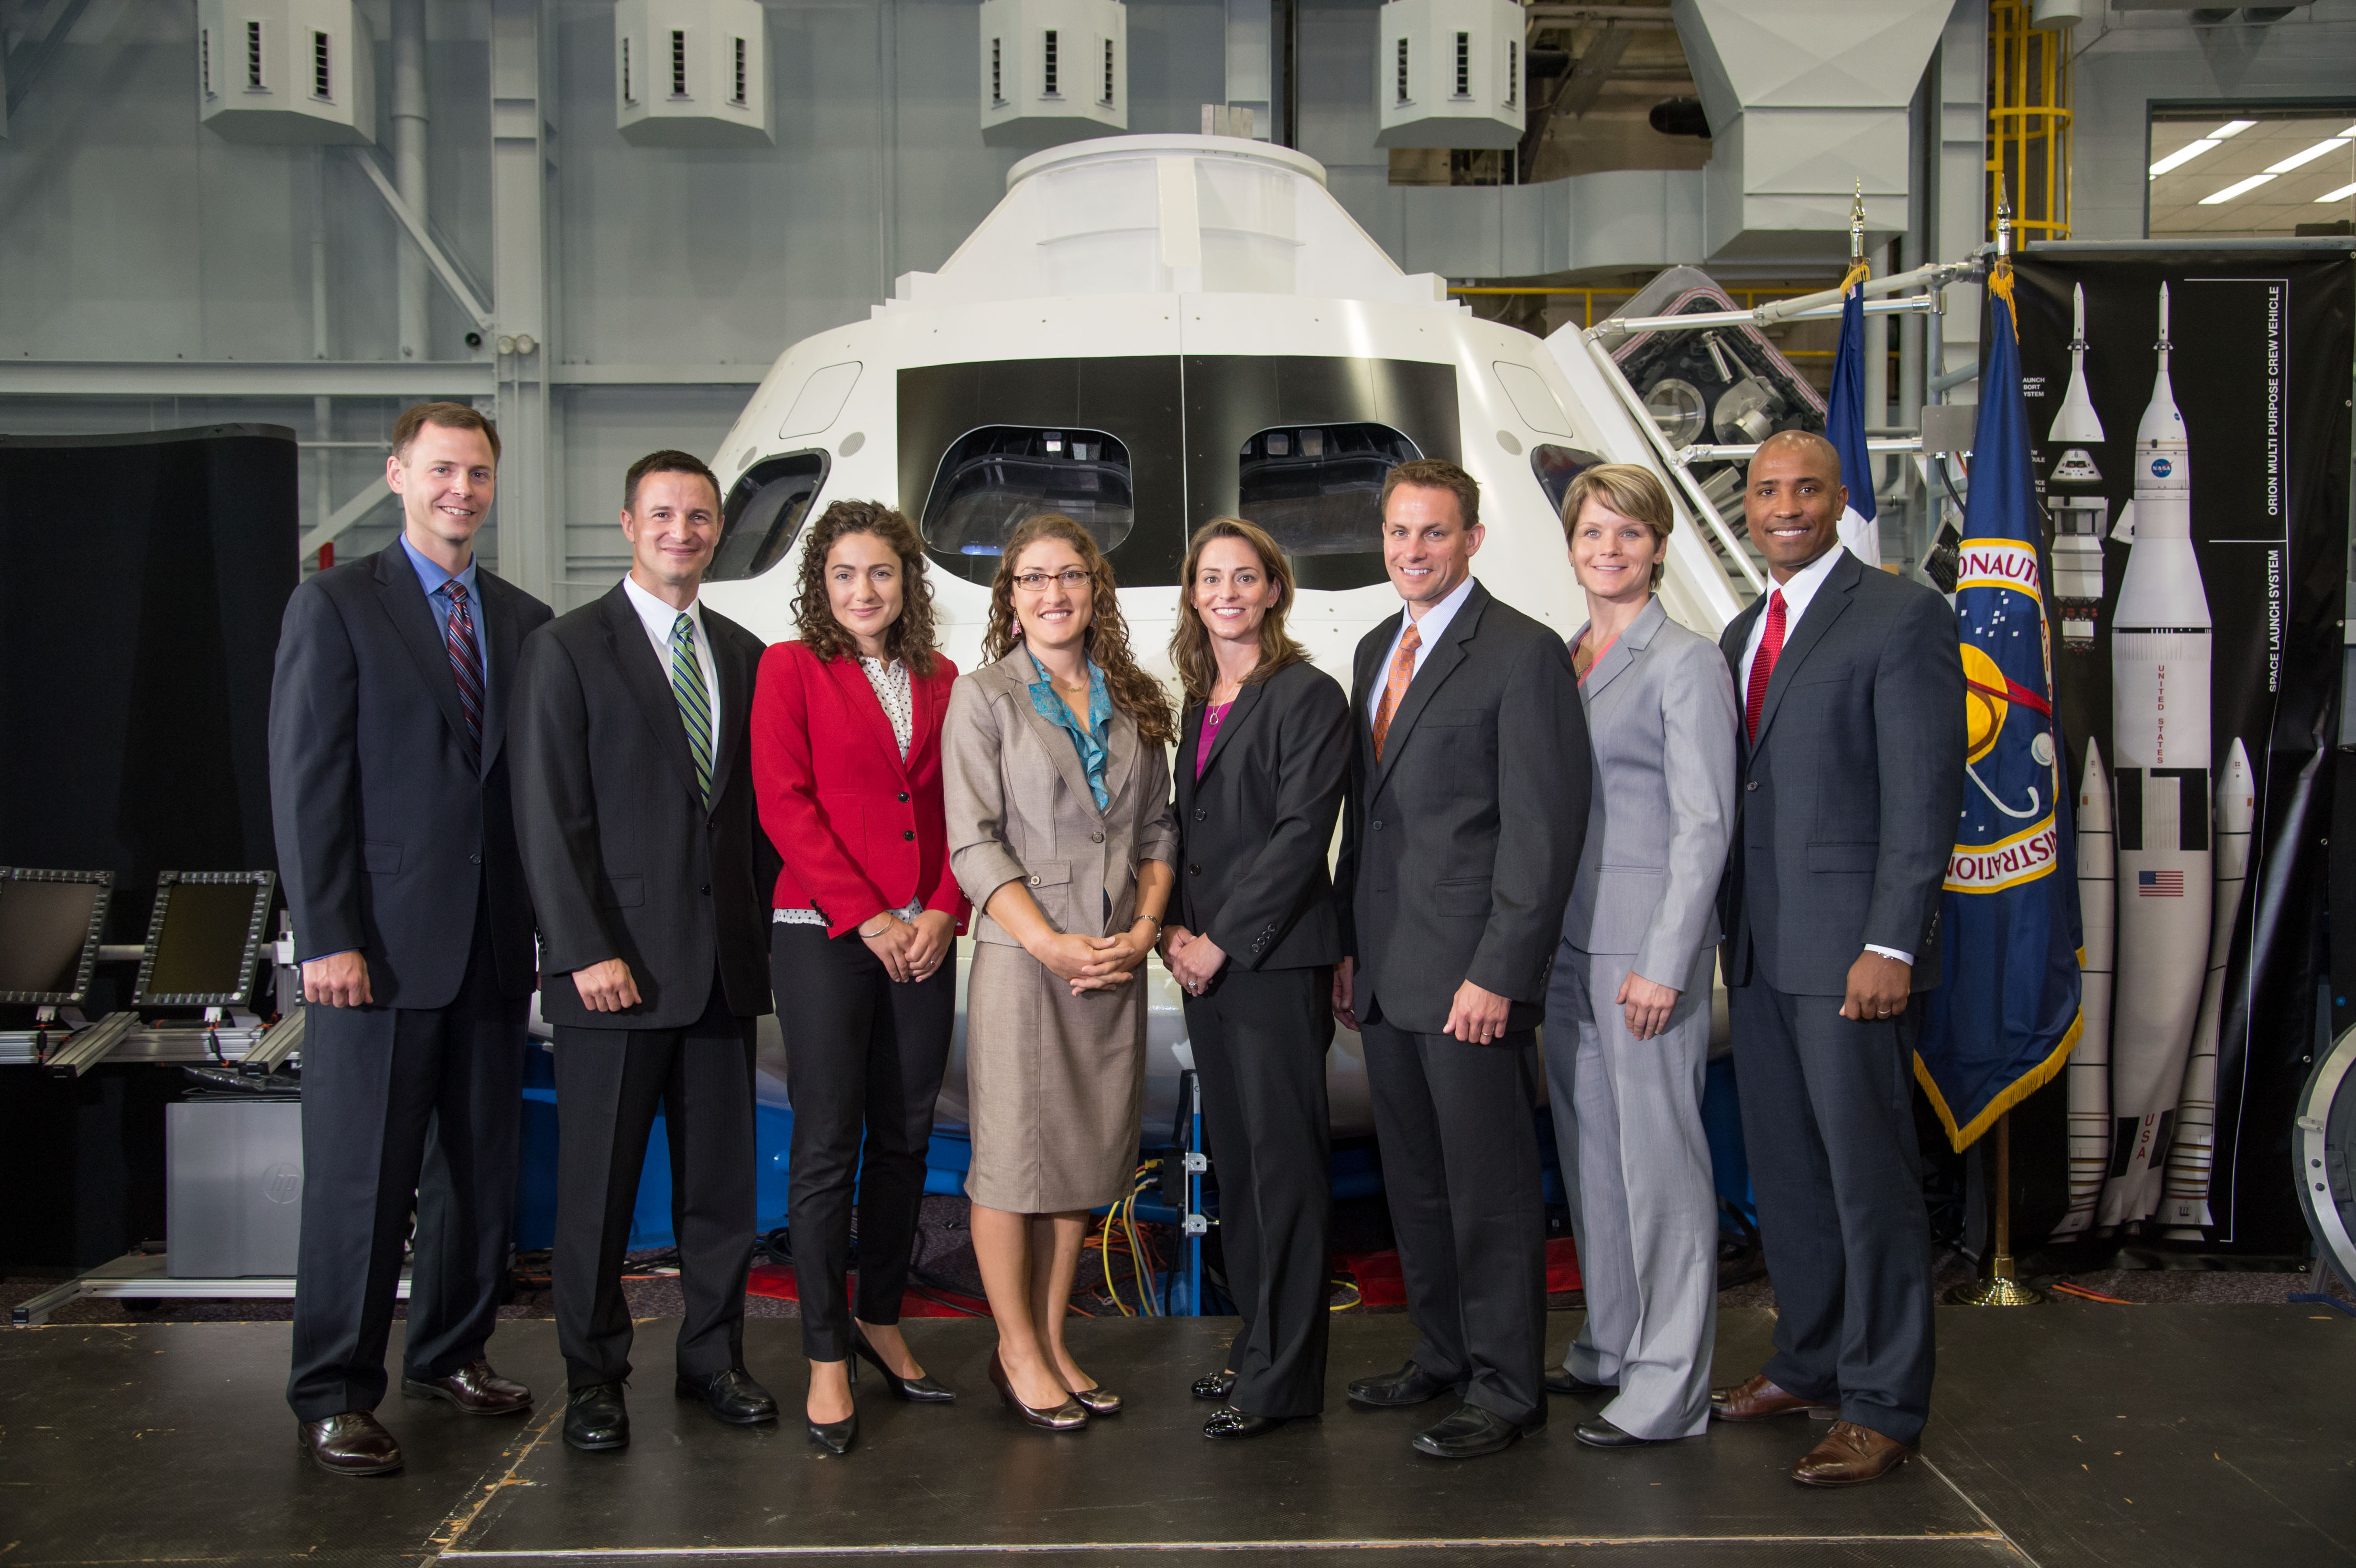 Nasa S 2013 Astronaut Candidates Promote Stem Education At